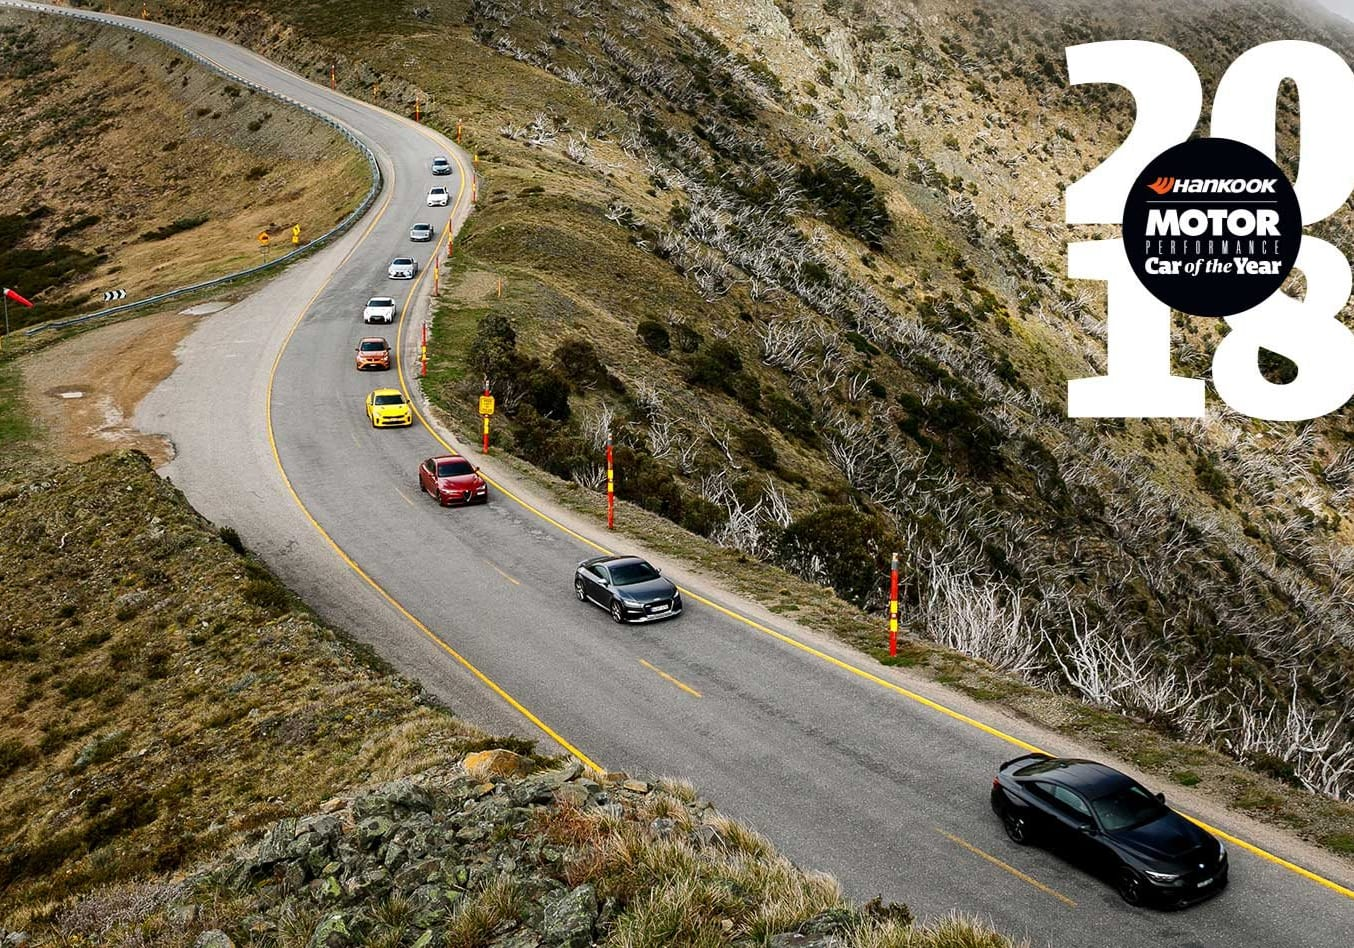 Performance Car of the Year 2018 On the Road feature